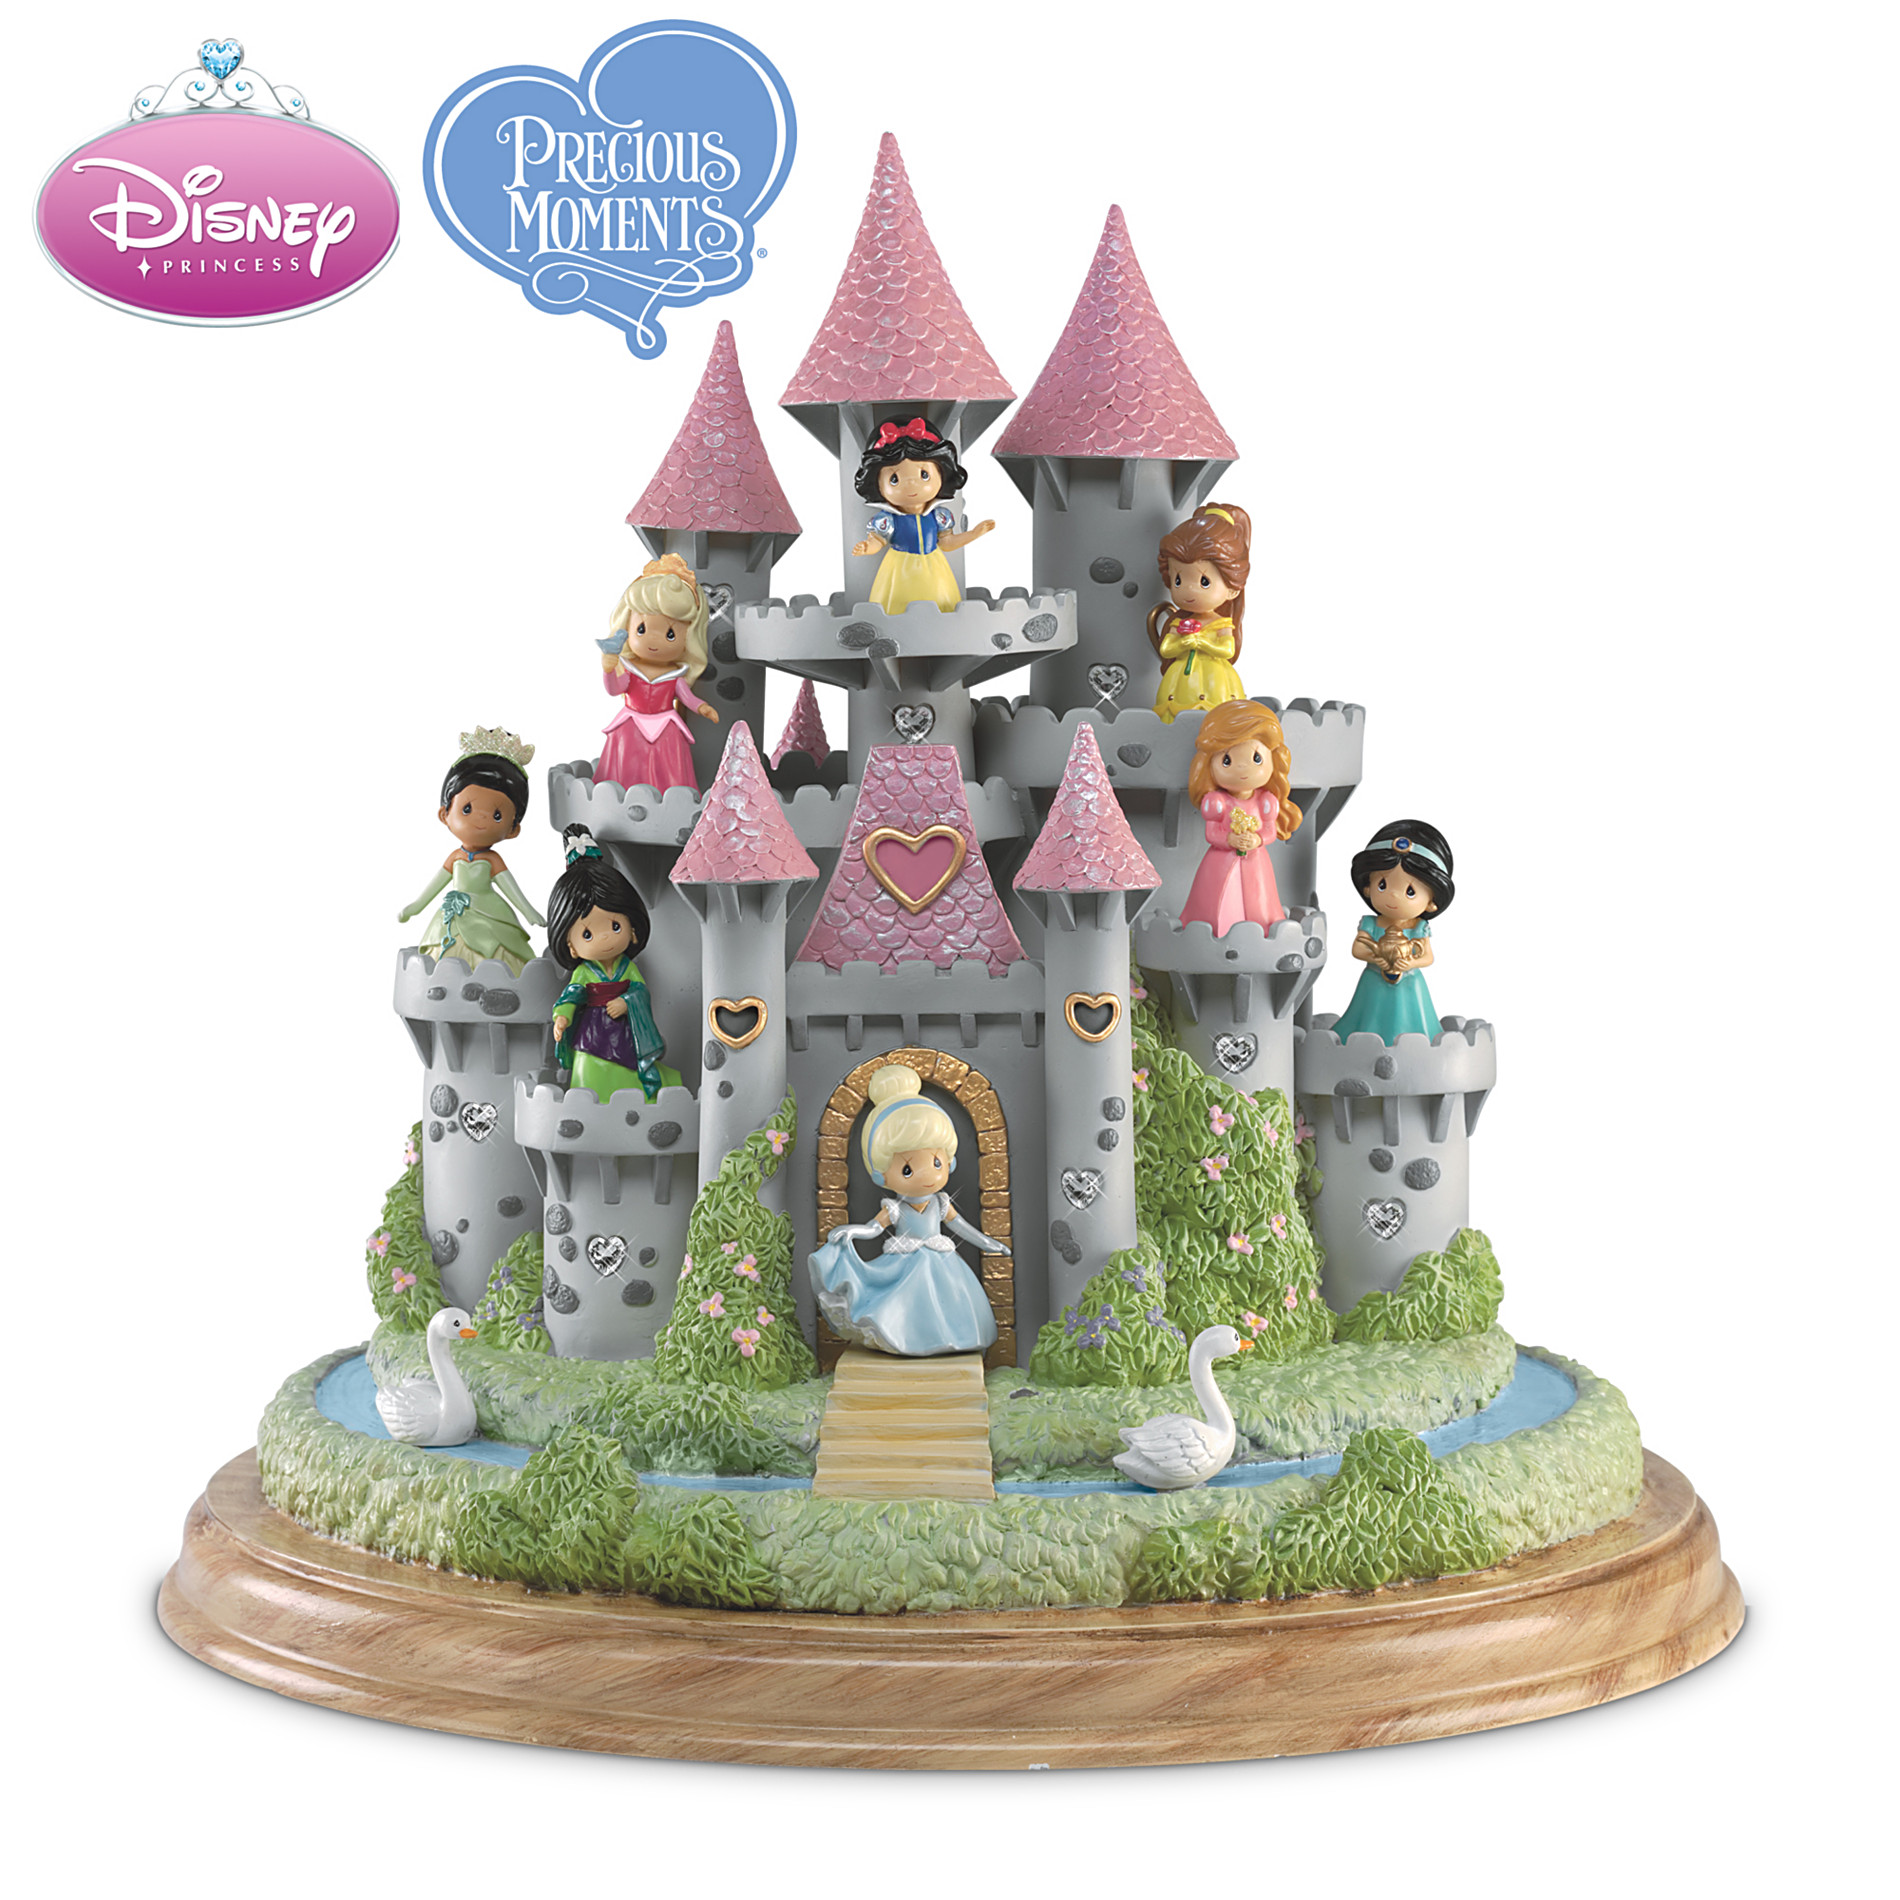 The Hamilton Collection Precious Moments Ultimate Disney Princess Castle Sculpture at Sears.com